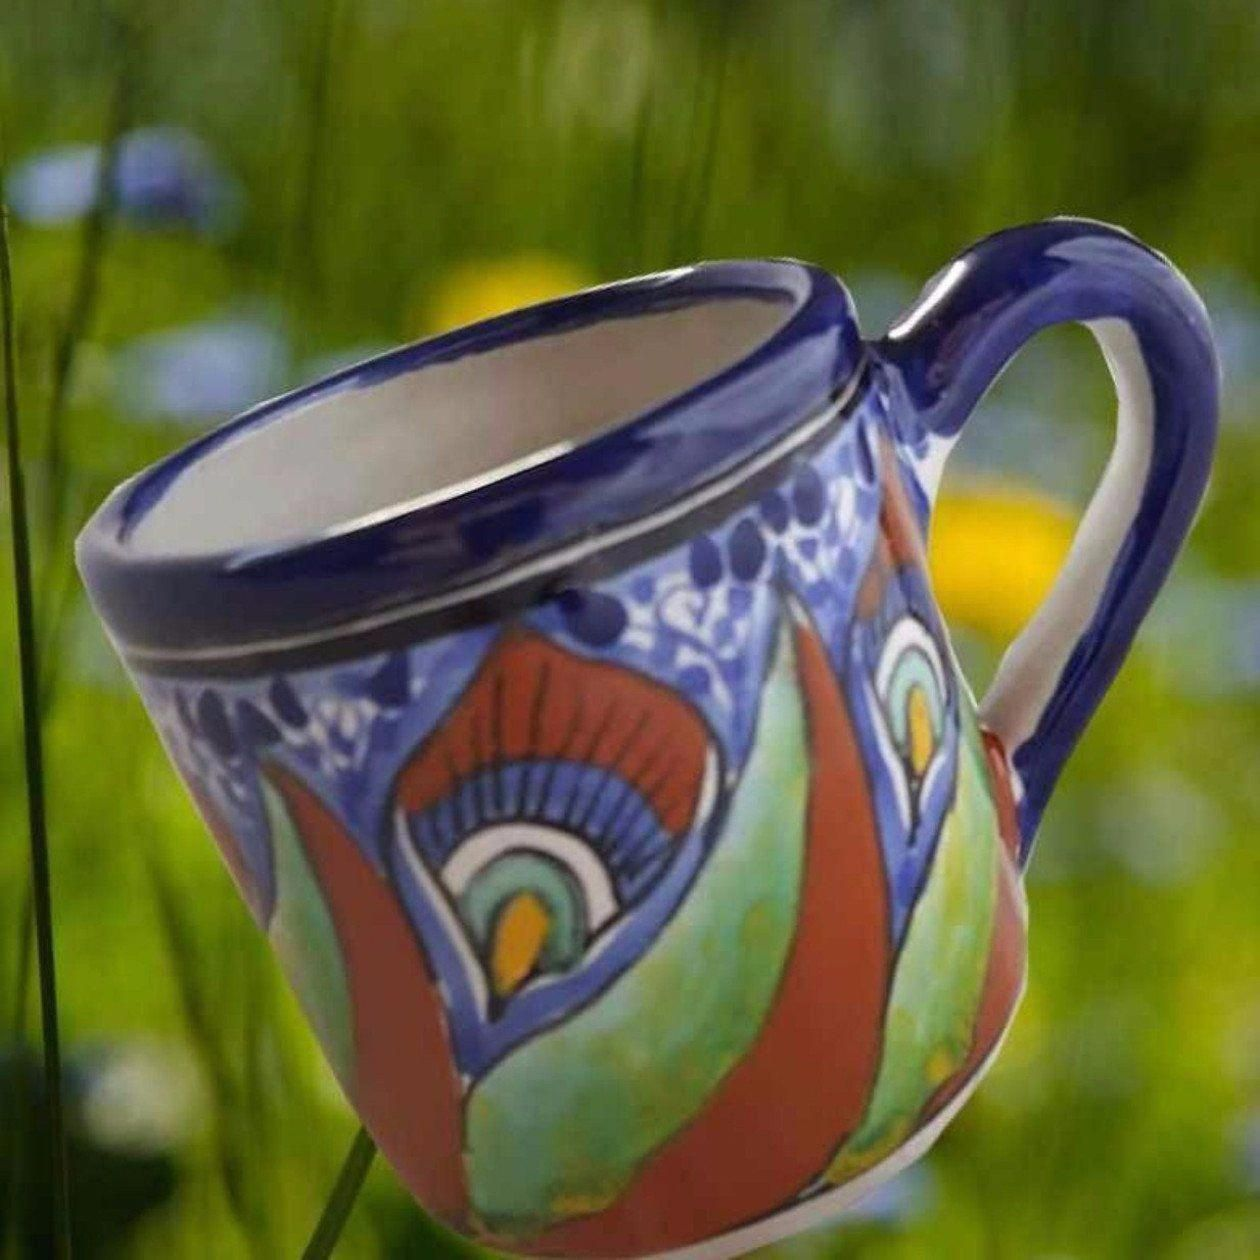 Centuries Old Traditions The Aguacatetalavera Mexican Pottery Coffee Mug Is